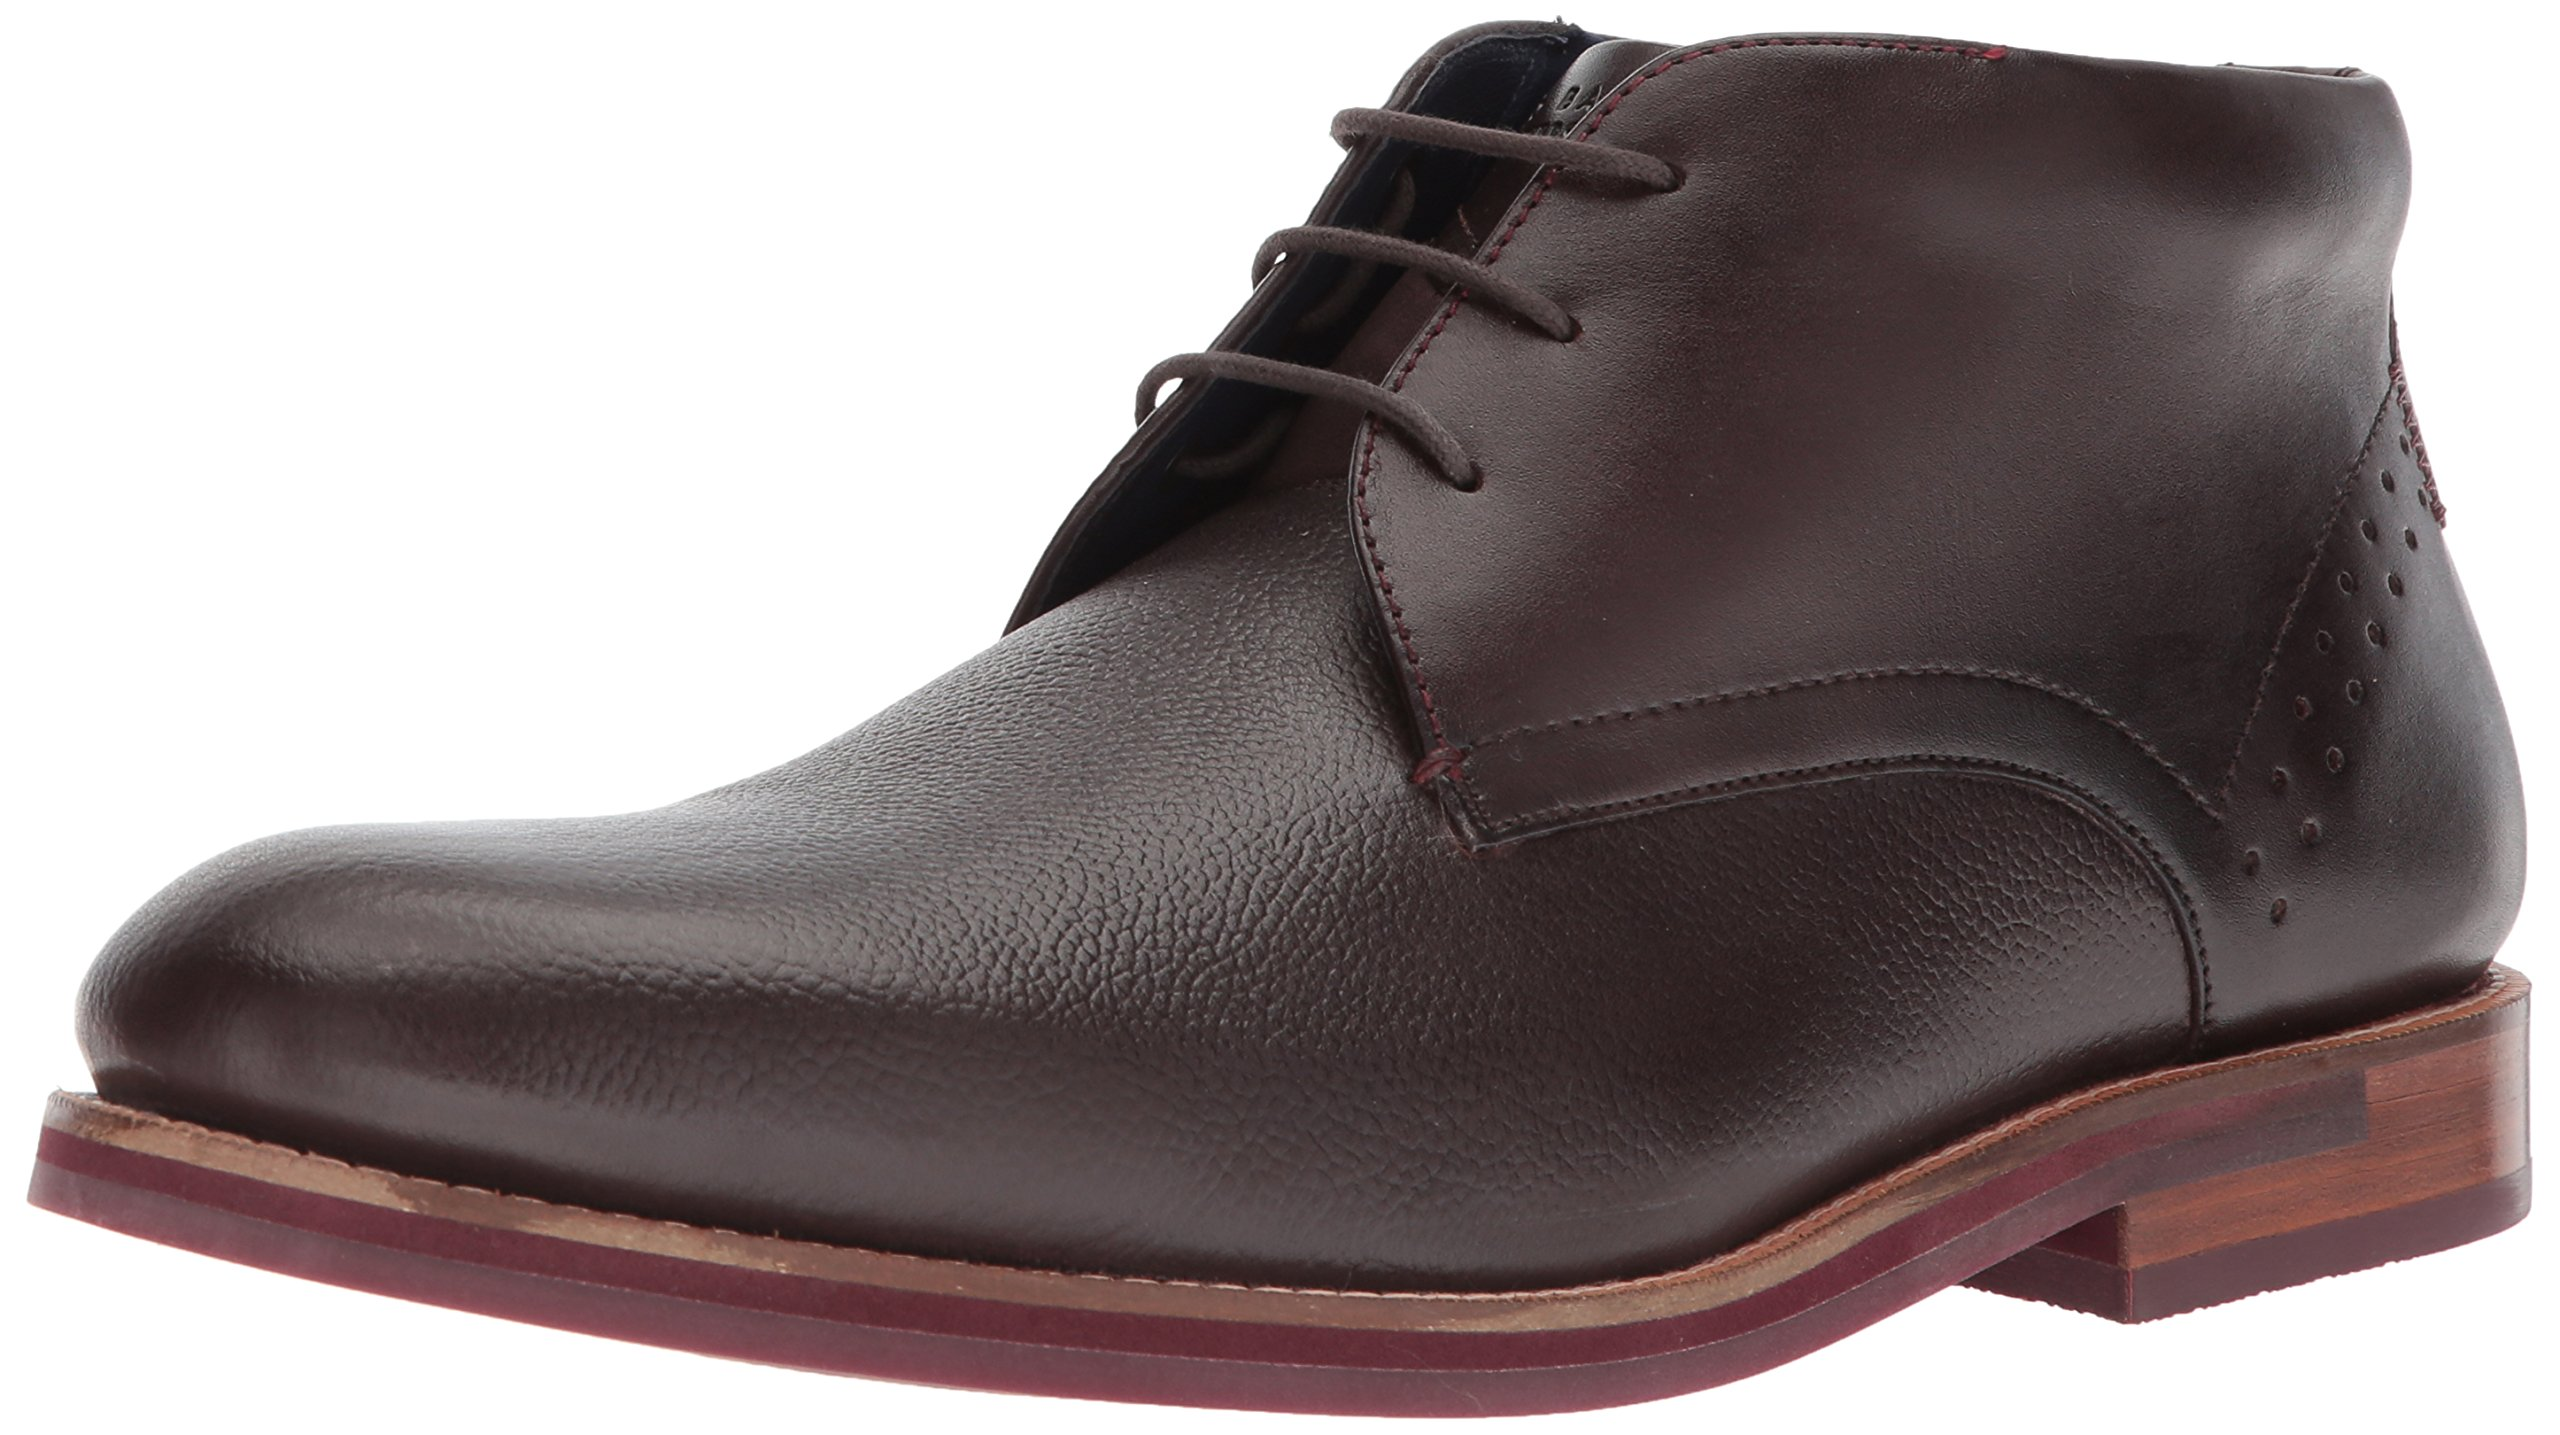 Ted Baker Men's Daiino Boot, Brown Leather, 7.5 D(M) US